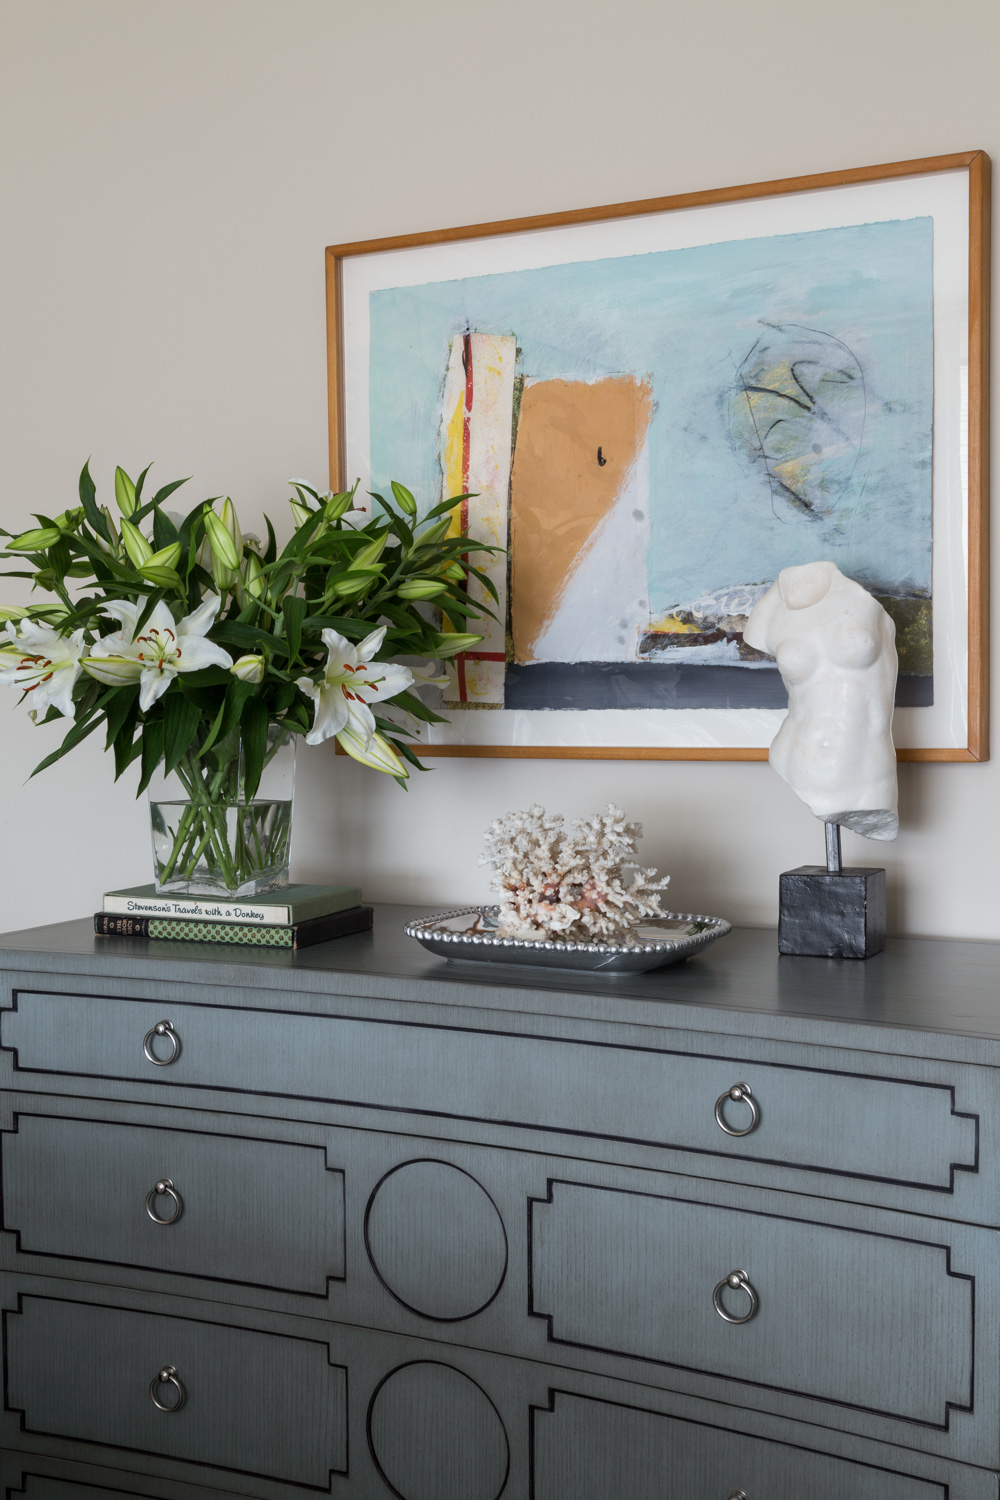 vignette of dresser with contemporary art